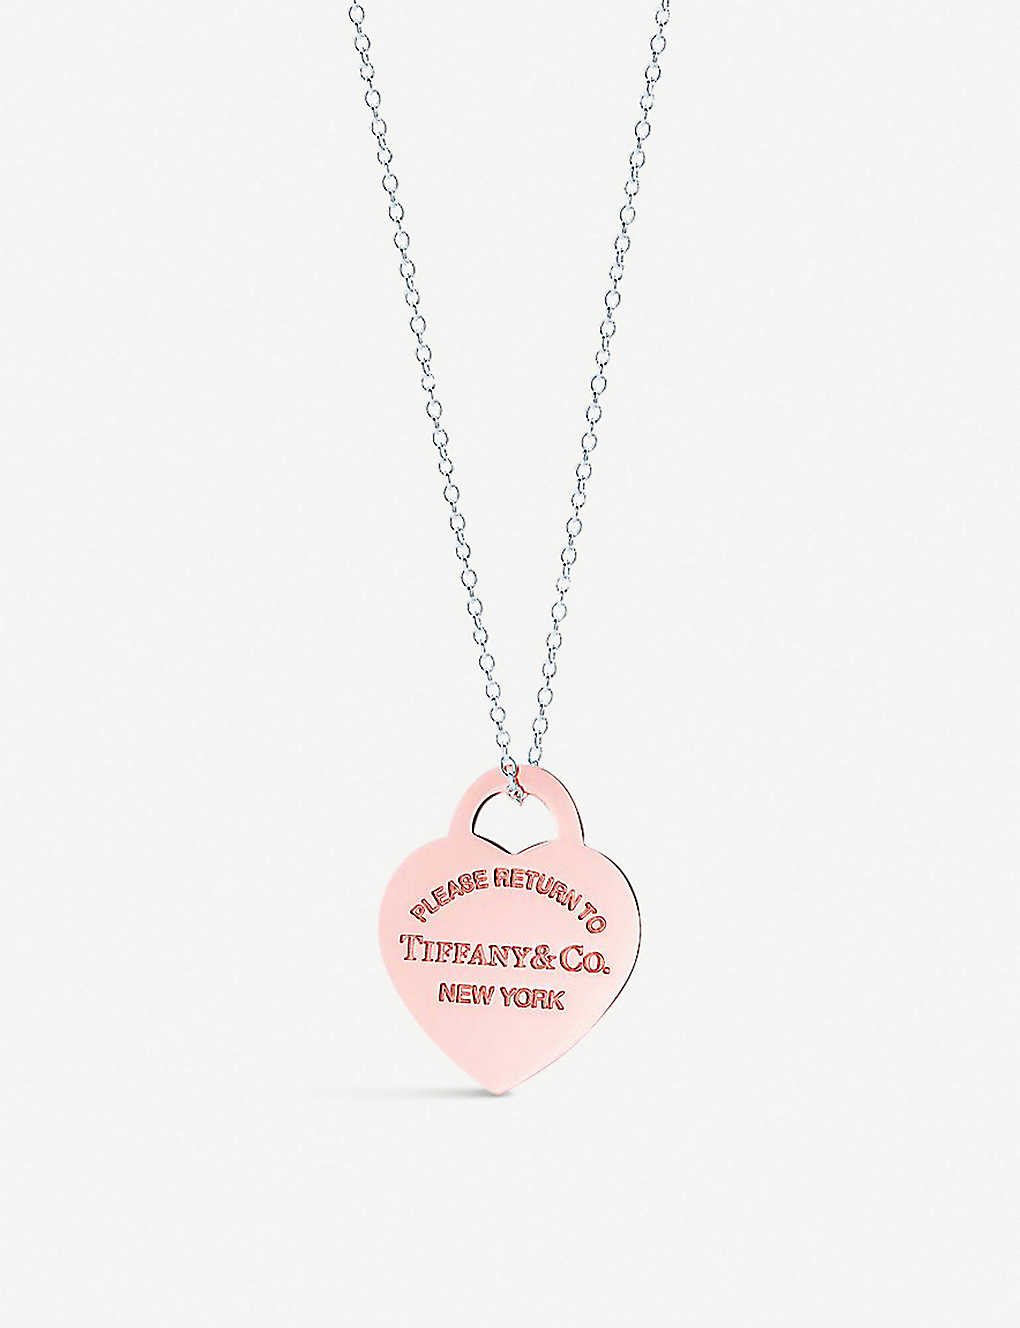 33a538807f5f8 TIFFANY & CO - Return to Tiffany Heart Tag 18ct gold-plated sterling ...